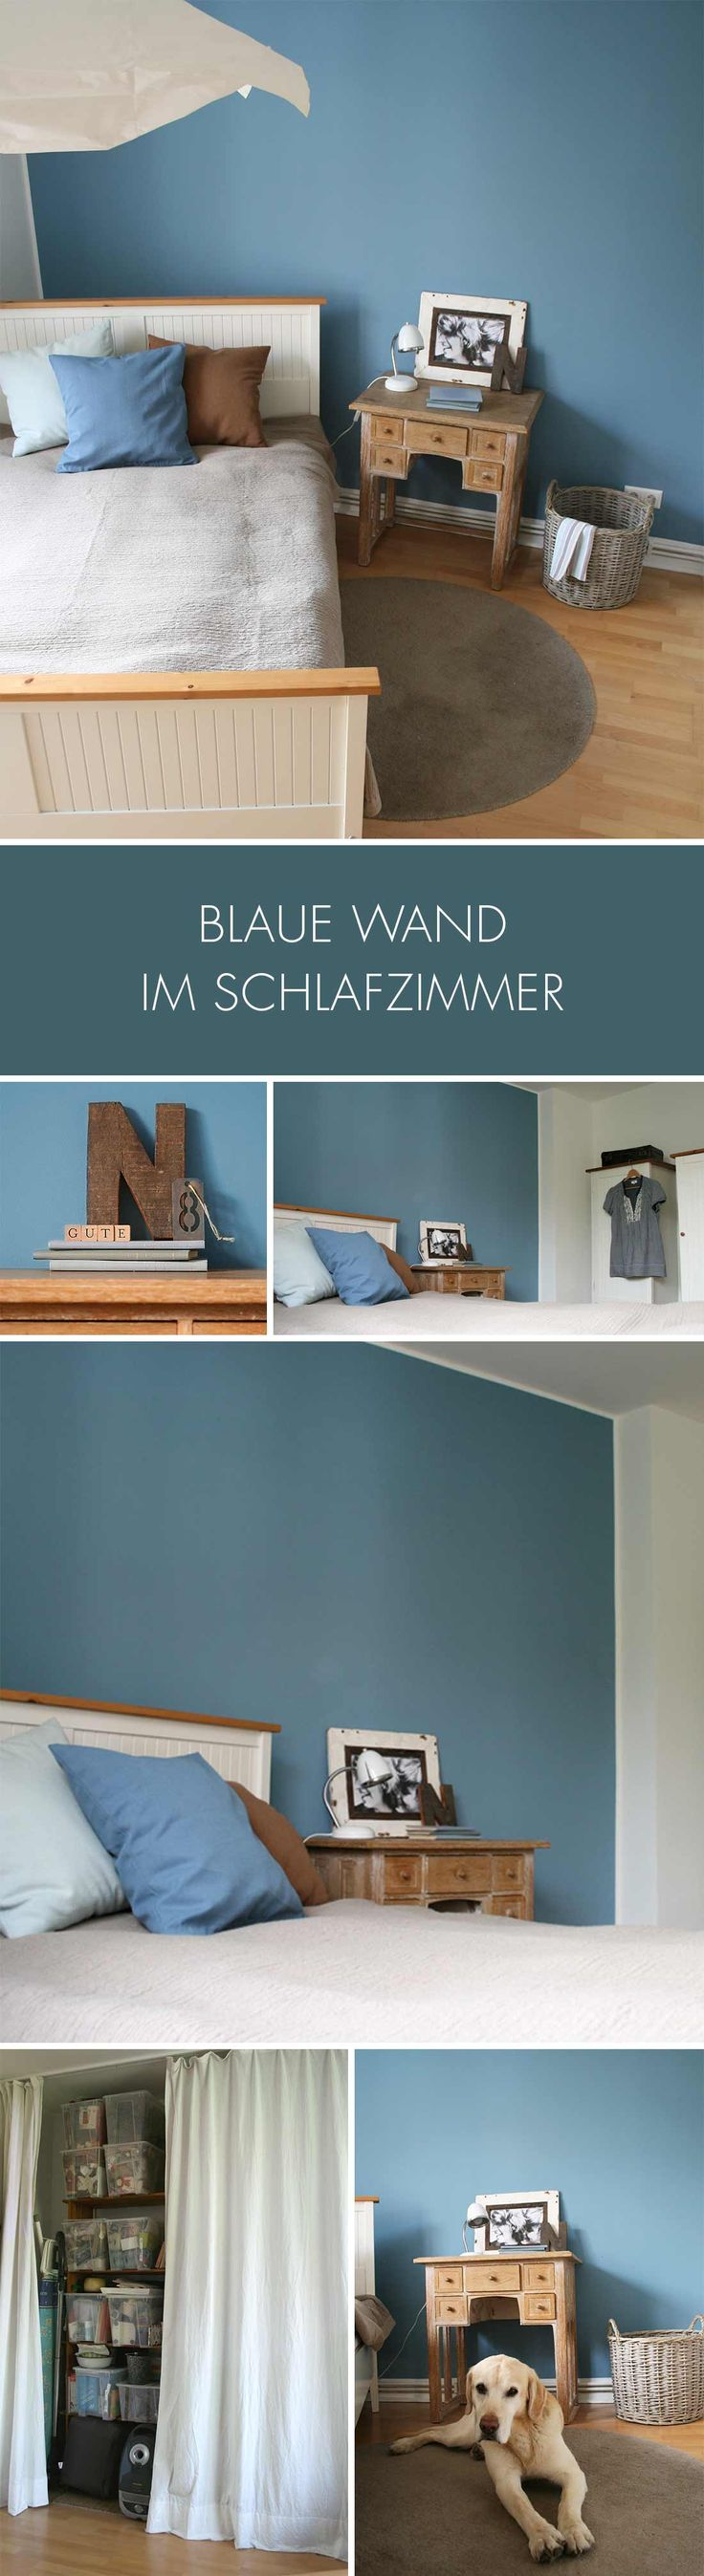 19 best Wandgestaltung im Schlafzimmer images on Pinterest | Bedroom ...